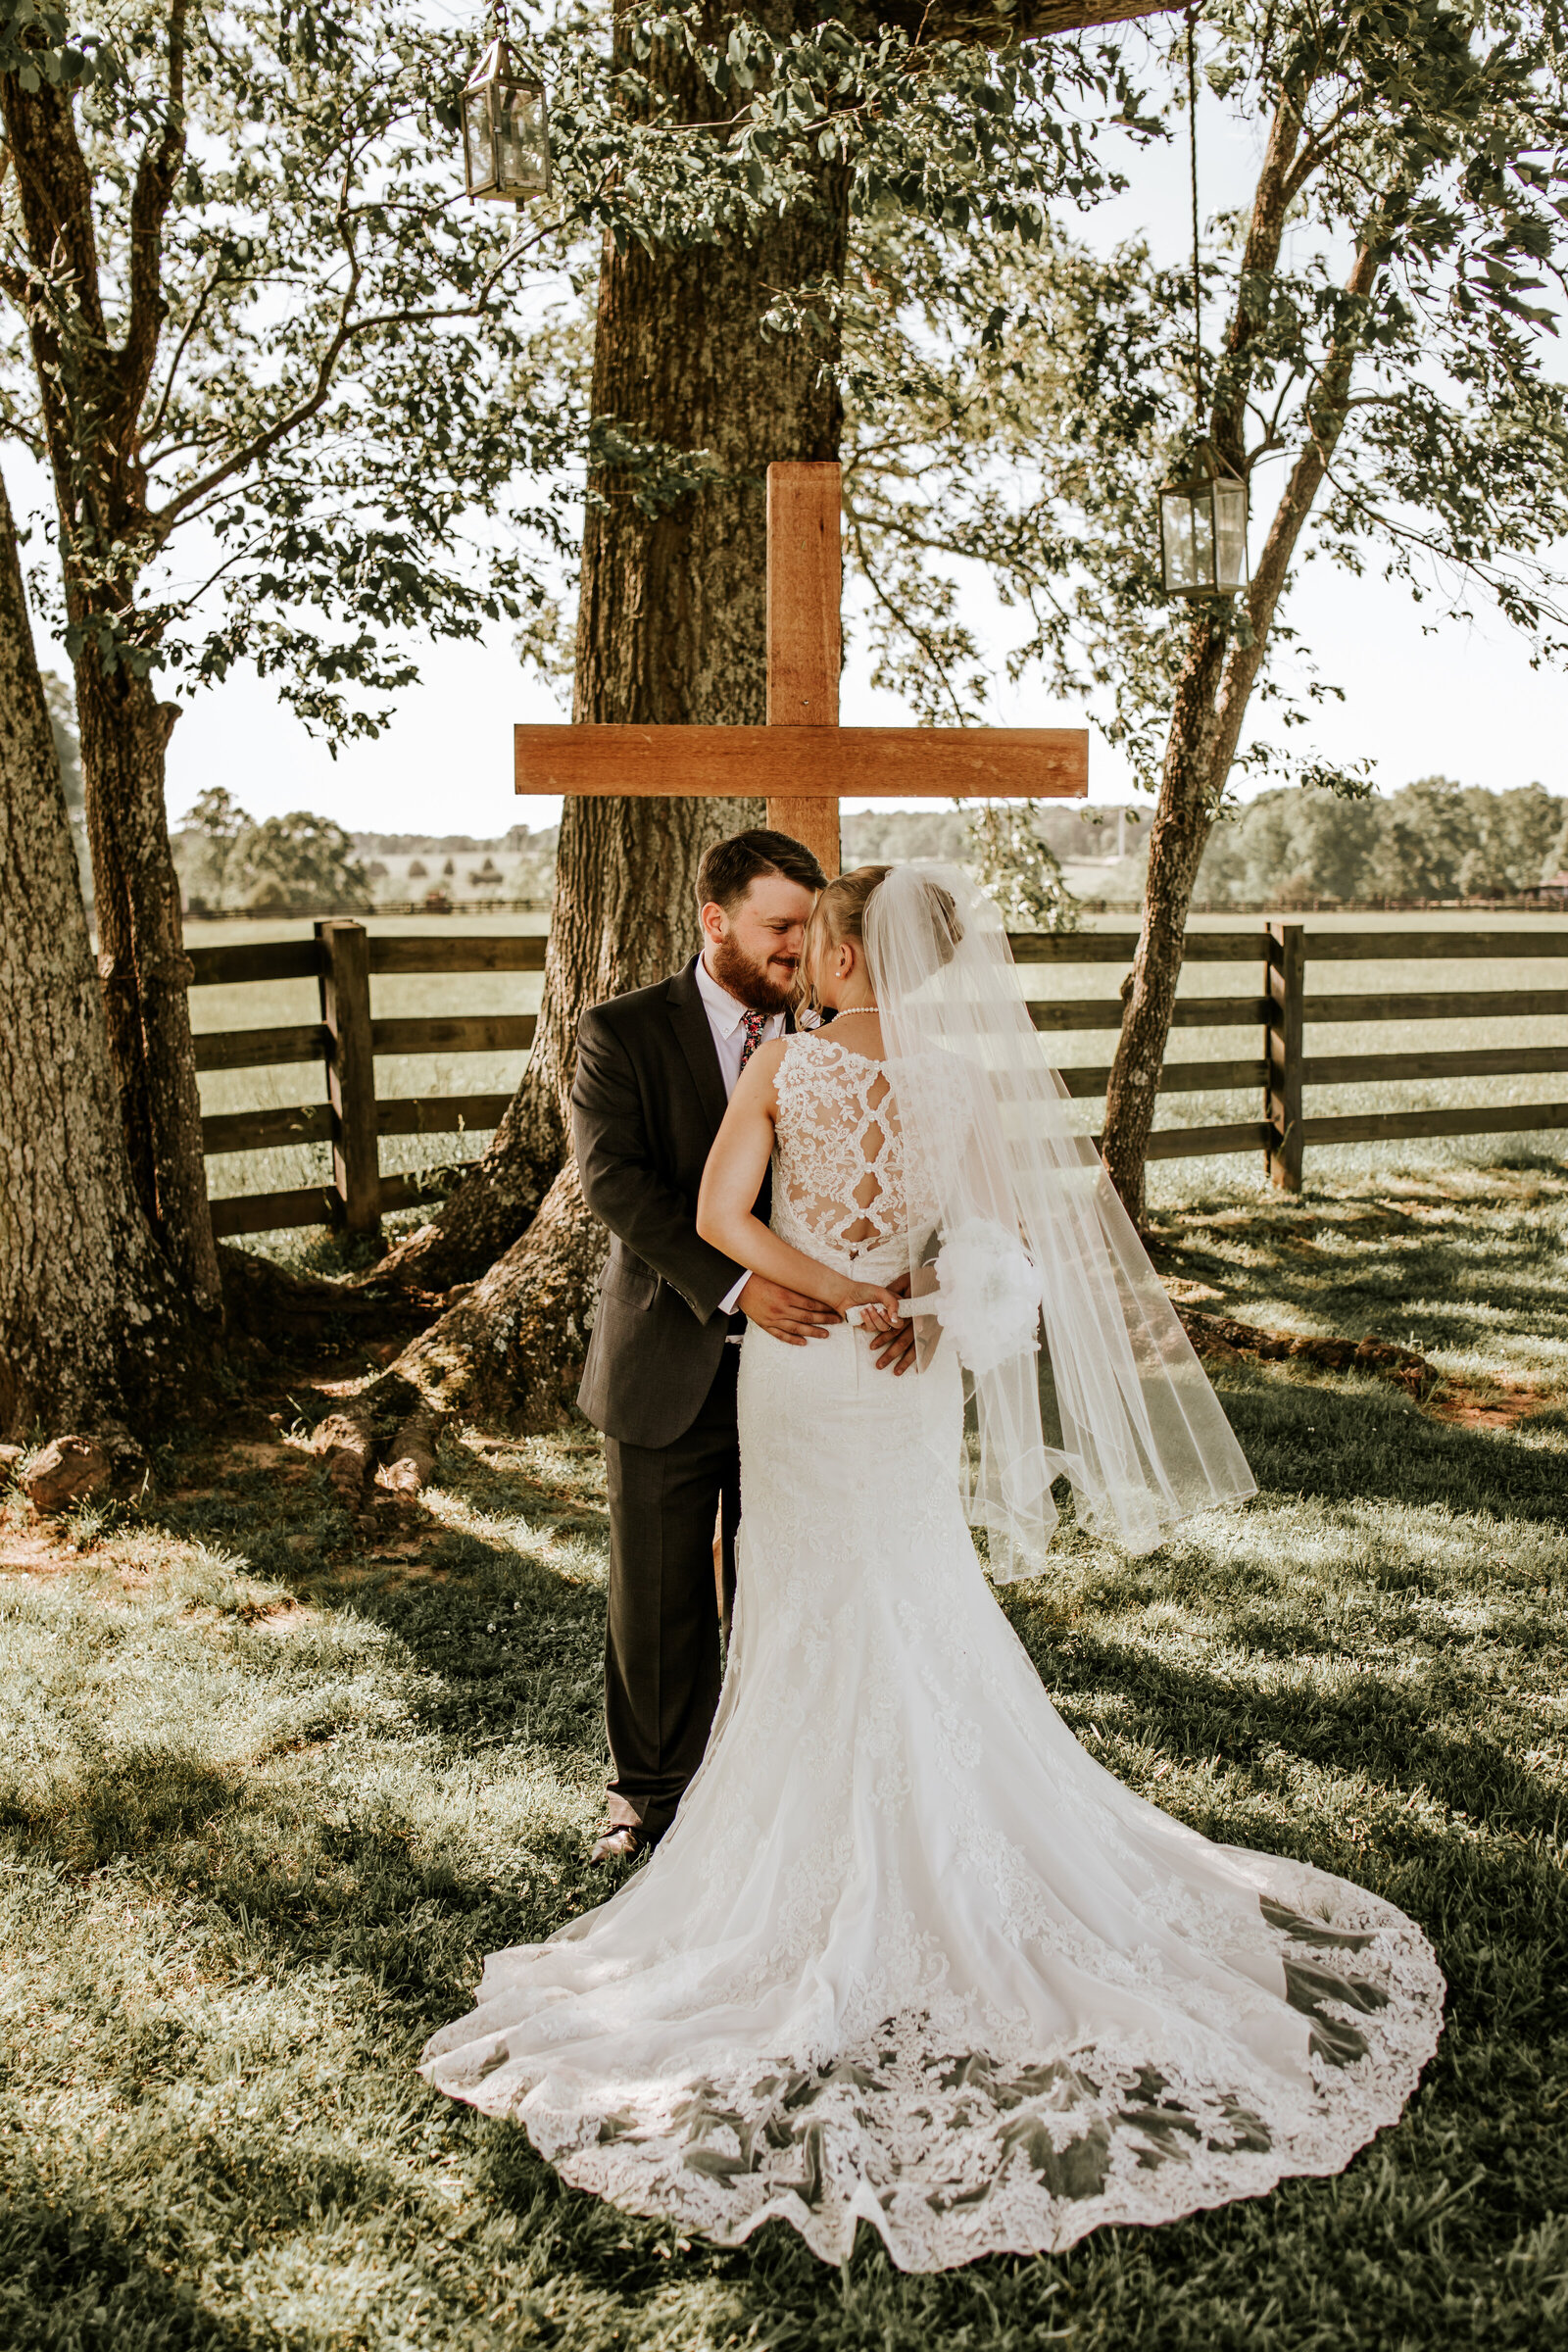 J.Michelle Photography photographs the bride and groom during their portraits at their wedding at Willowick Farm in McDonough, Ga